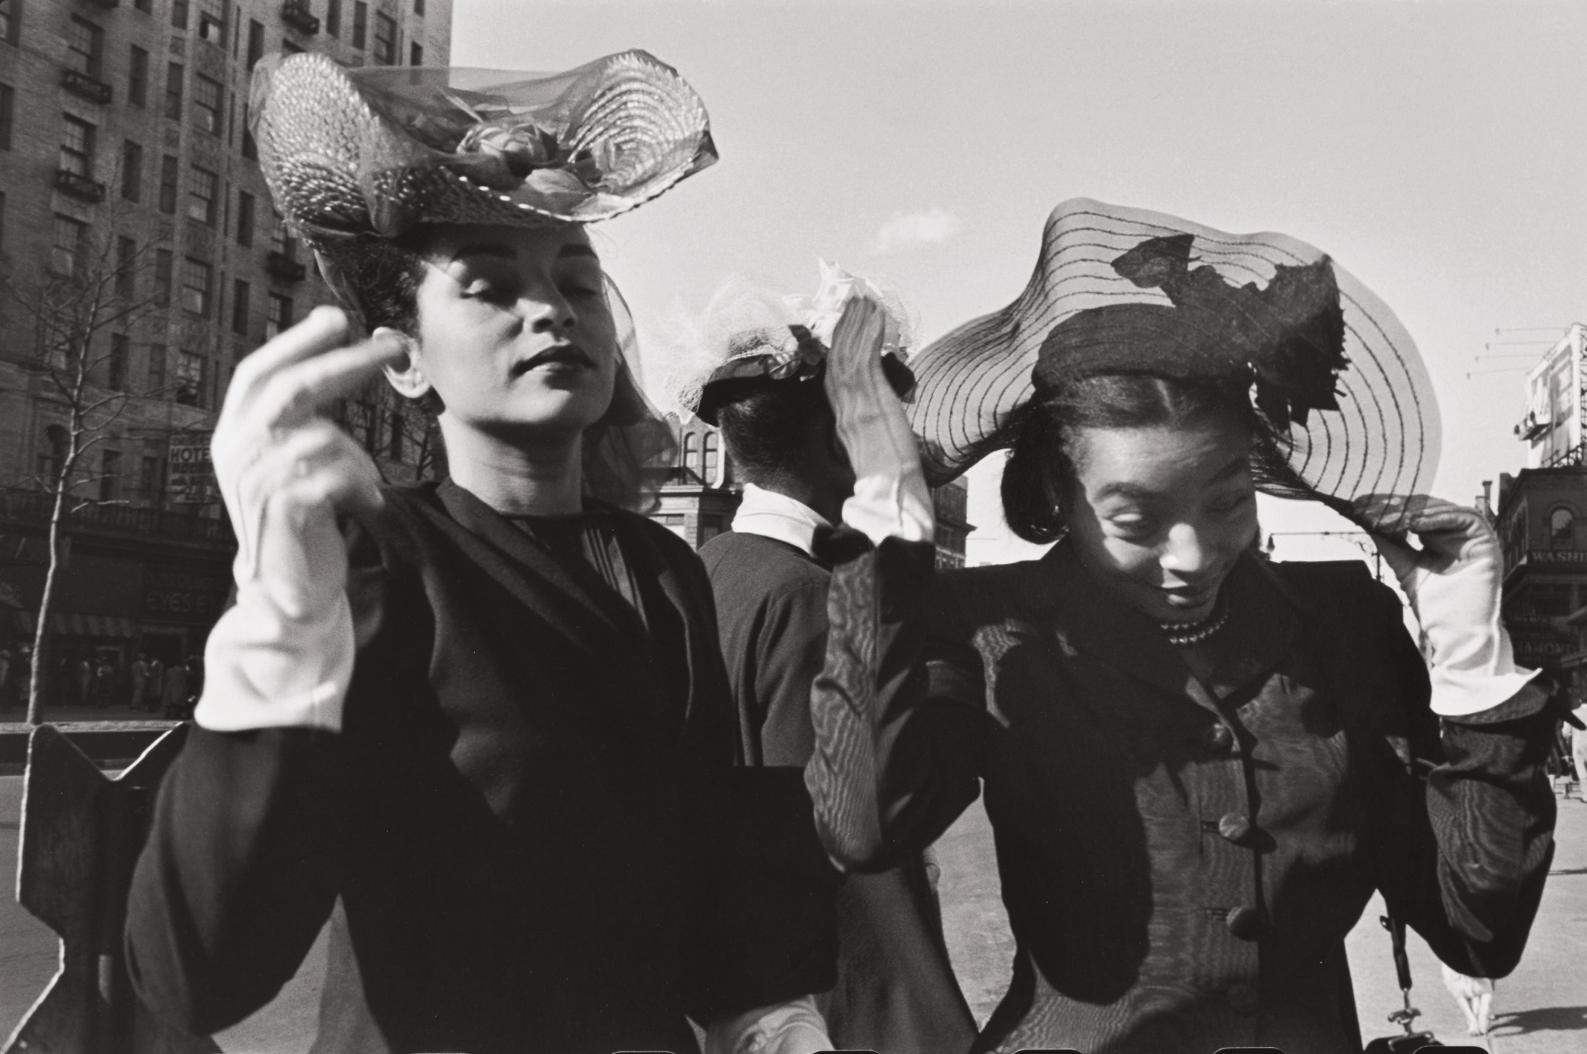 Henri Cartier-Bresson-Easter Sunday, Harlem-1947